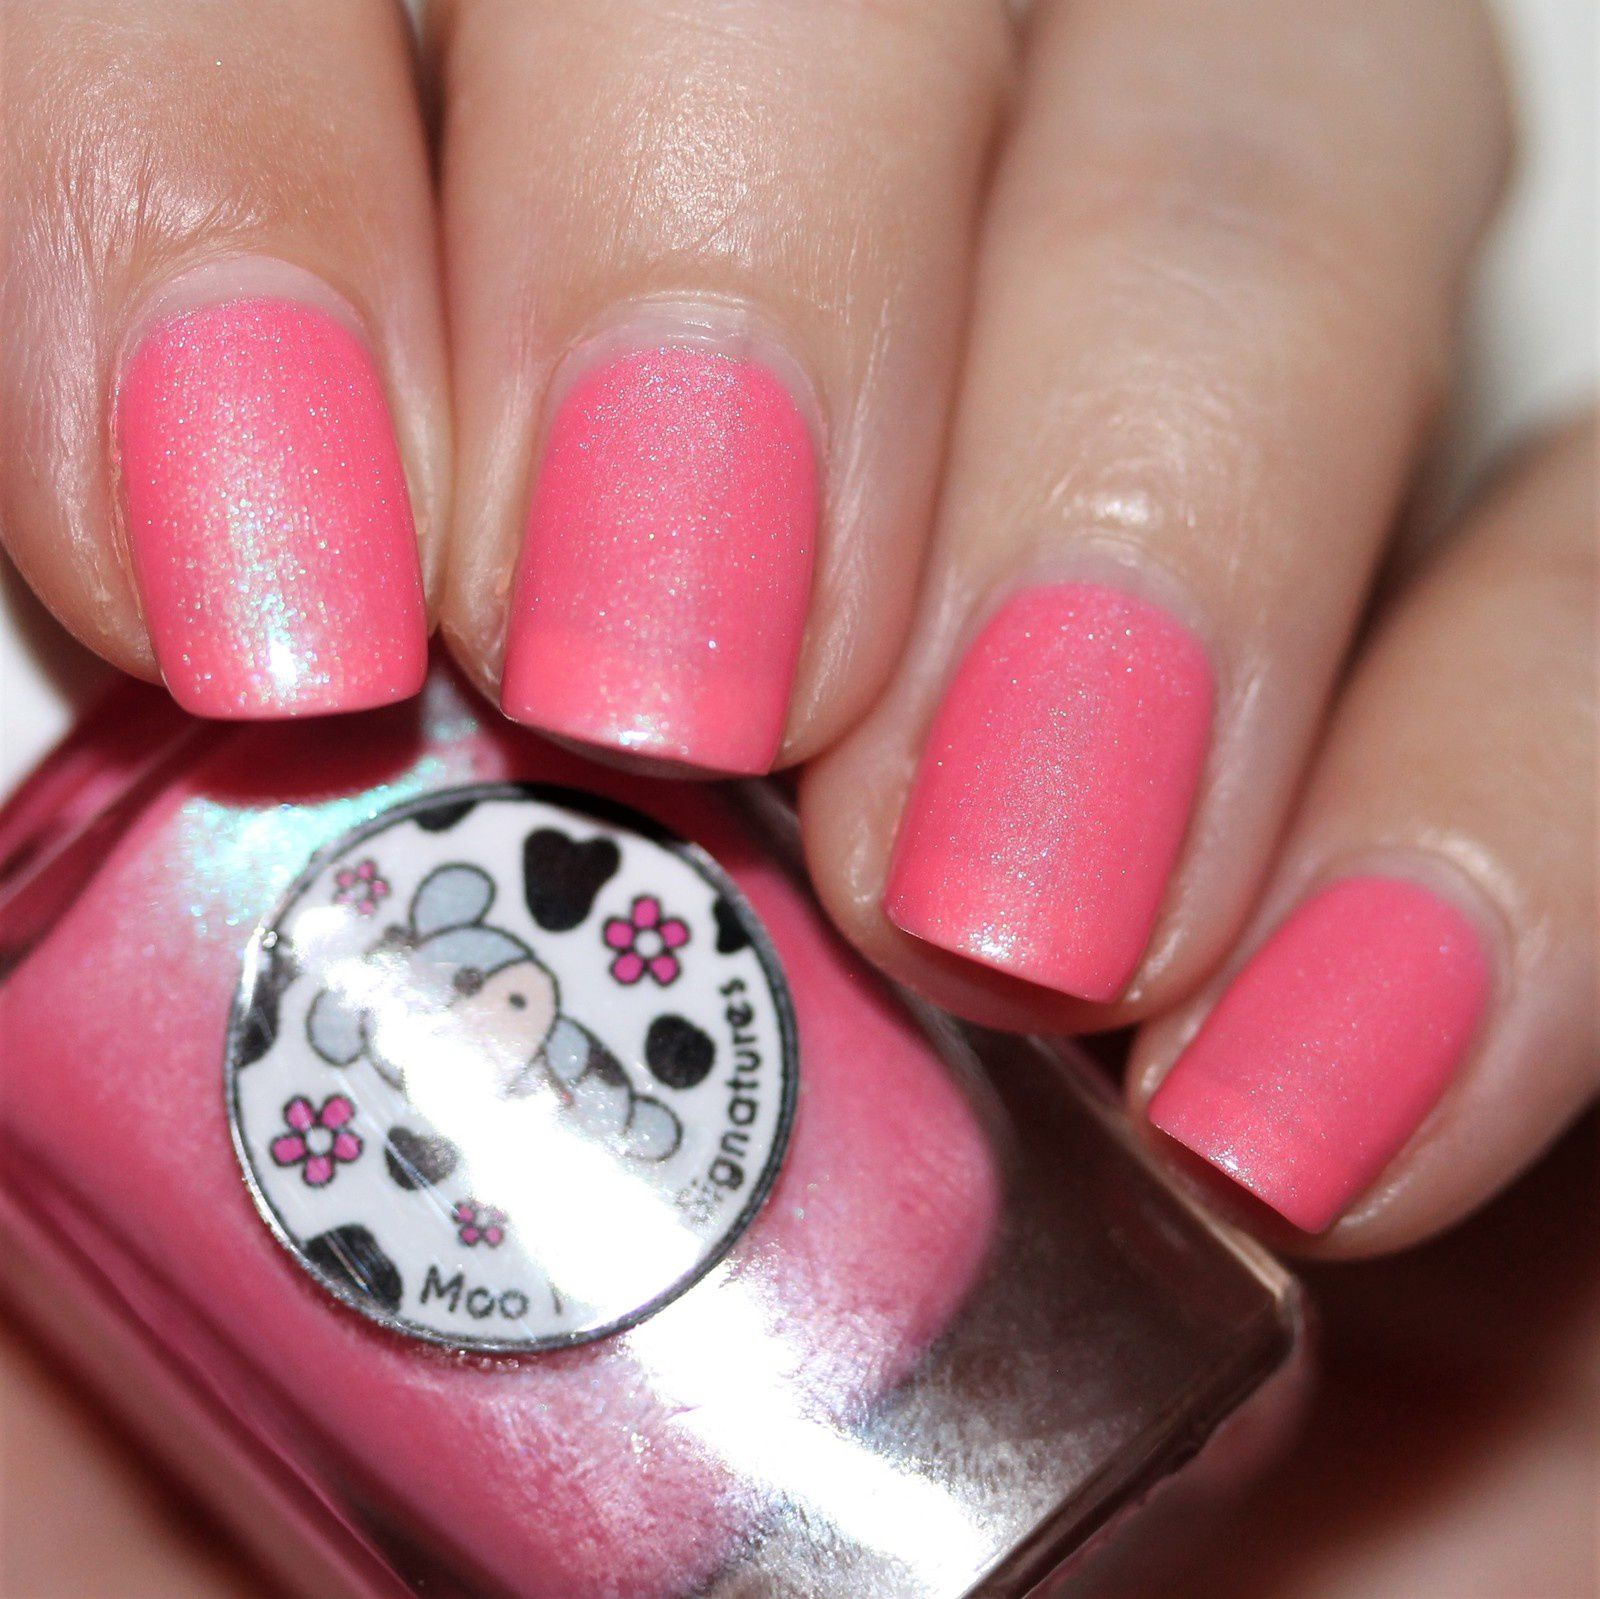 Essie Protein Base Coat / Moo Moo's Signatures Love Brightens Our World / HK Girl Top Coat